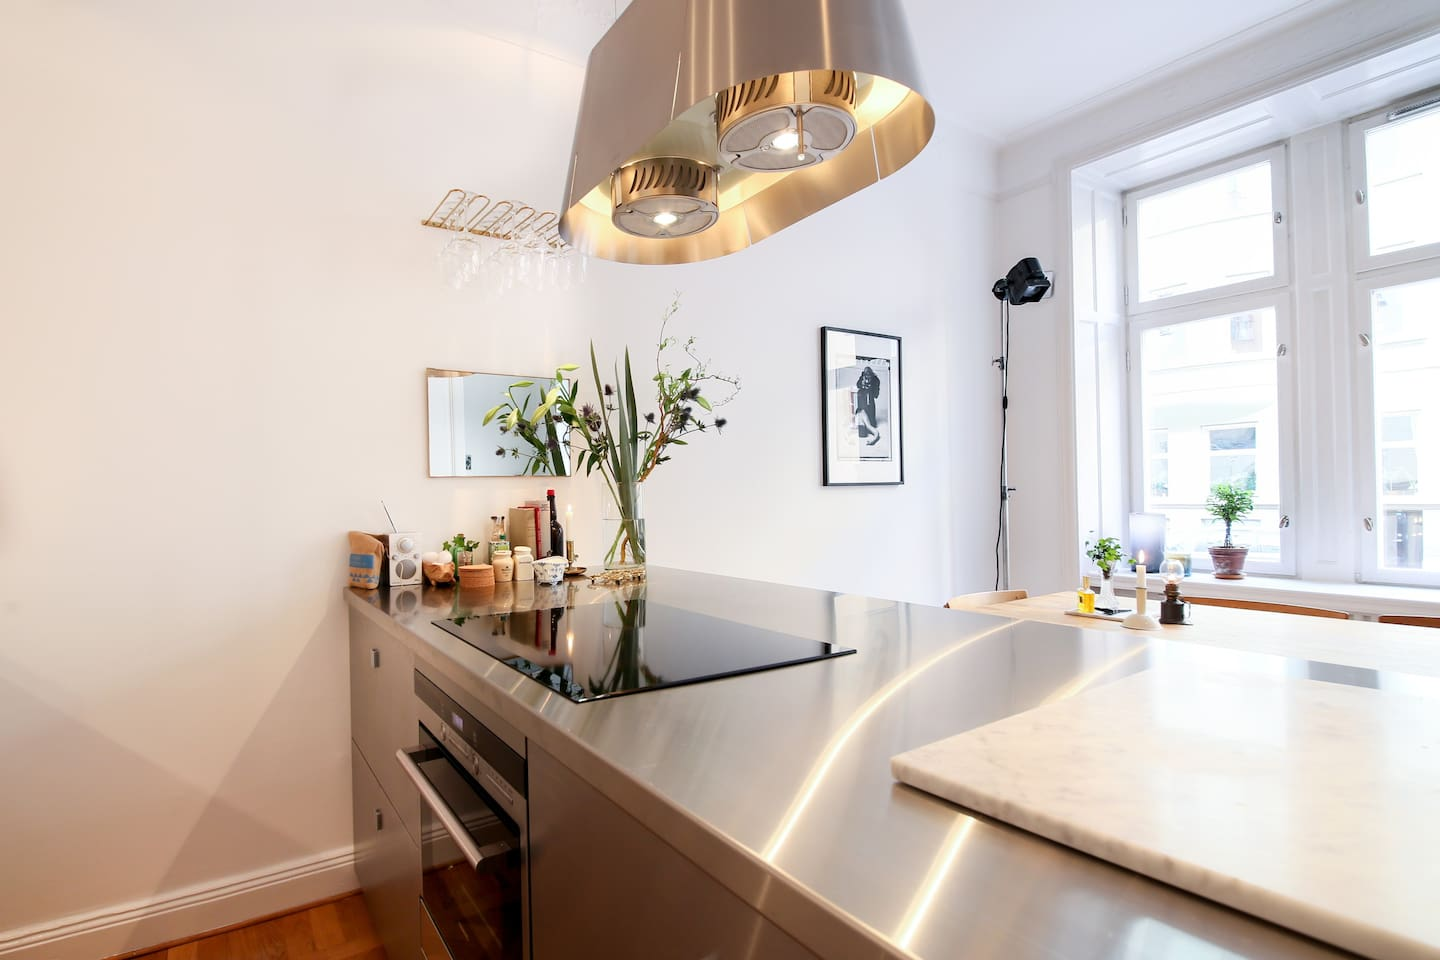 Luxury kitchen. With quiet street outside.